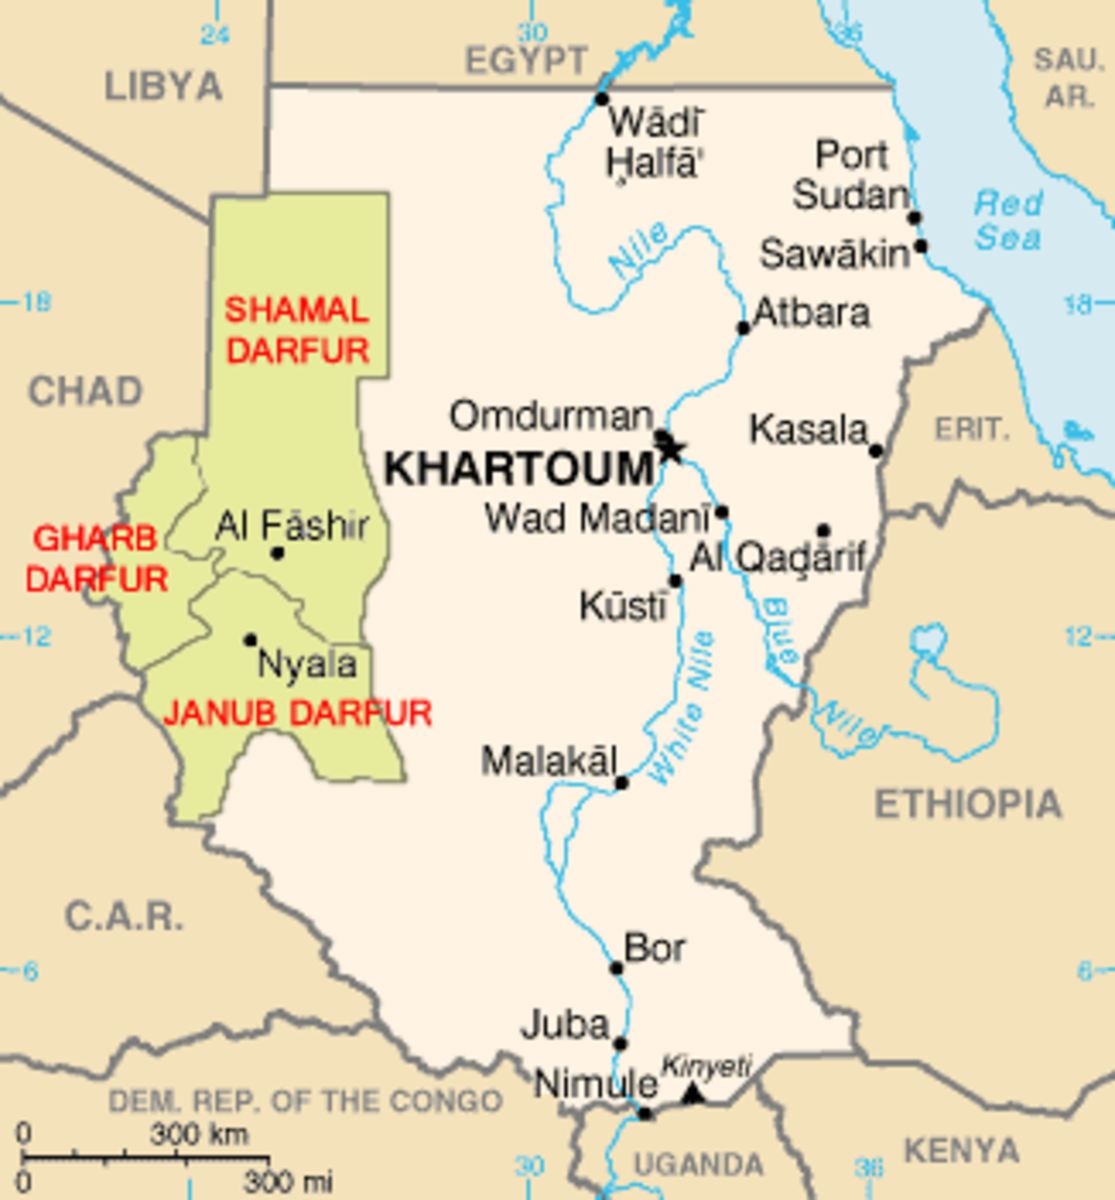 Map of the social and political division that exists in Sudan.